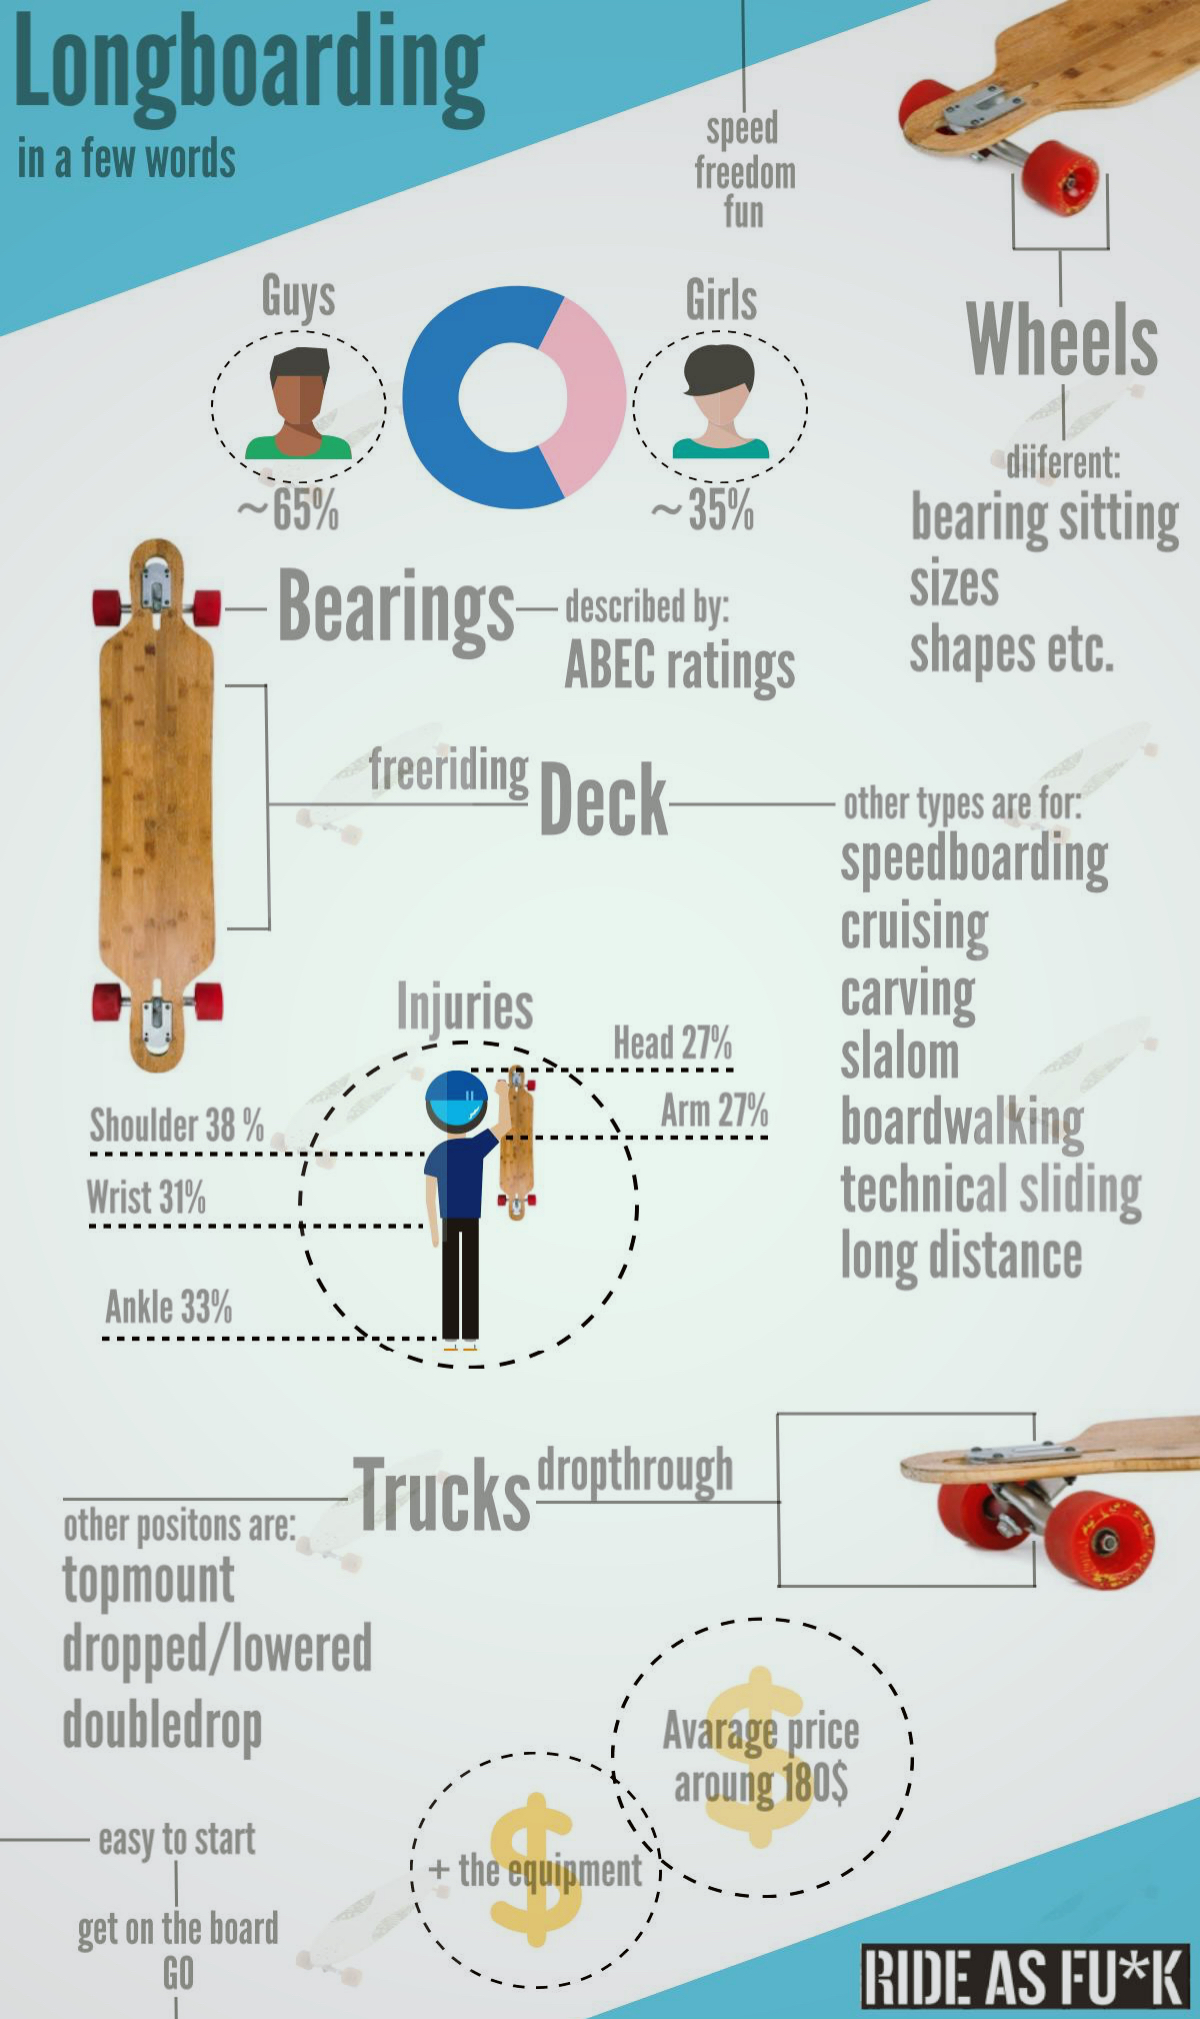 Longboarding in a Few Words - Infographic